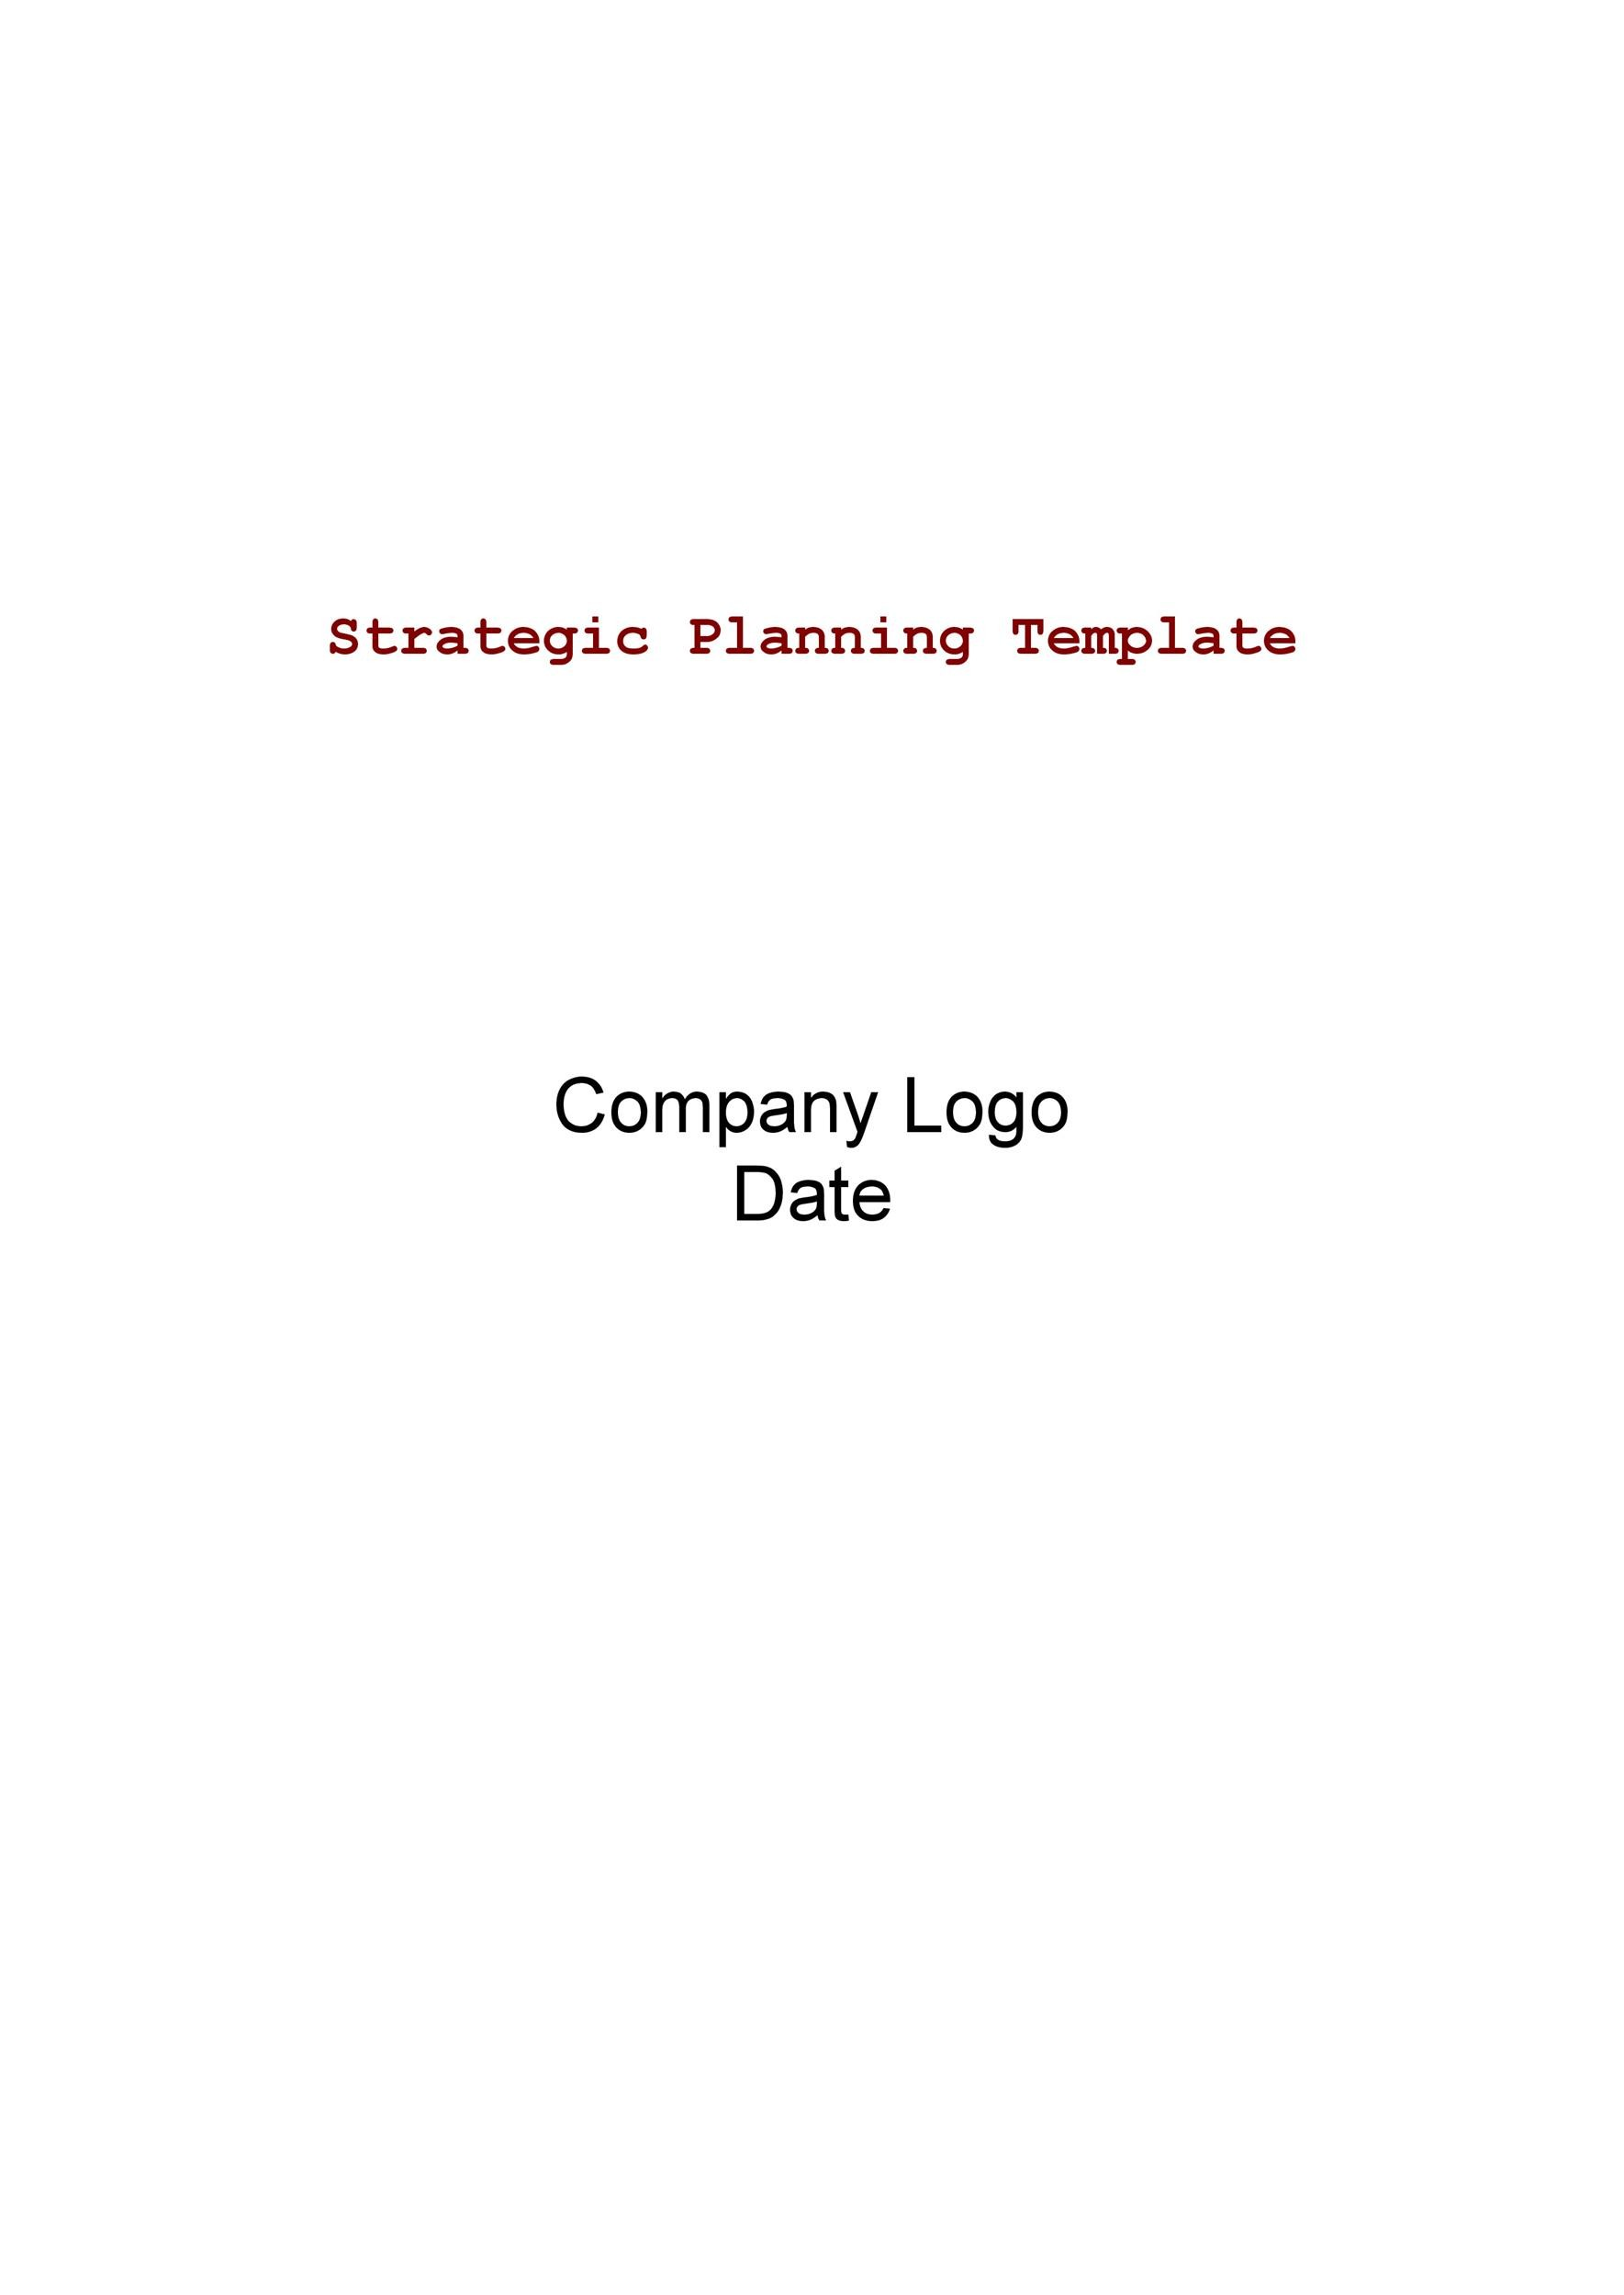 Strategic Plan Template 07